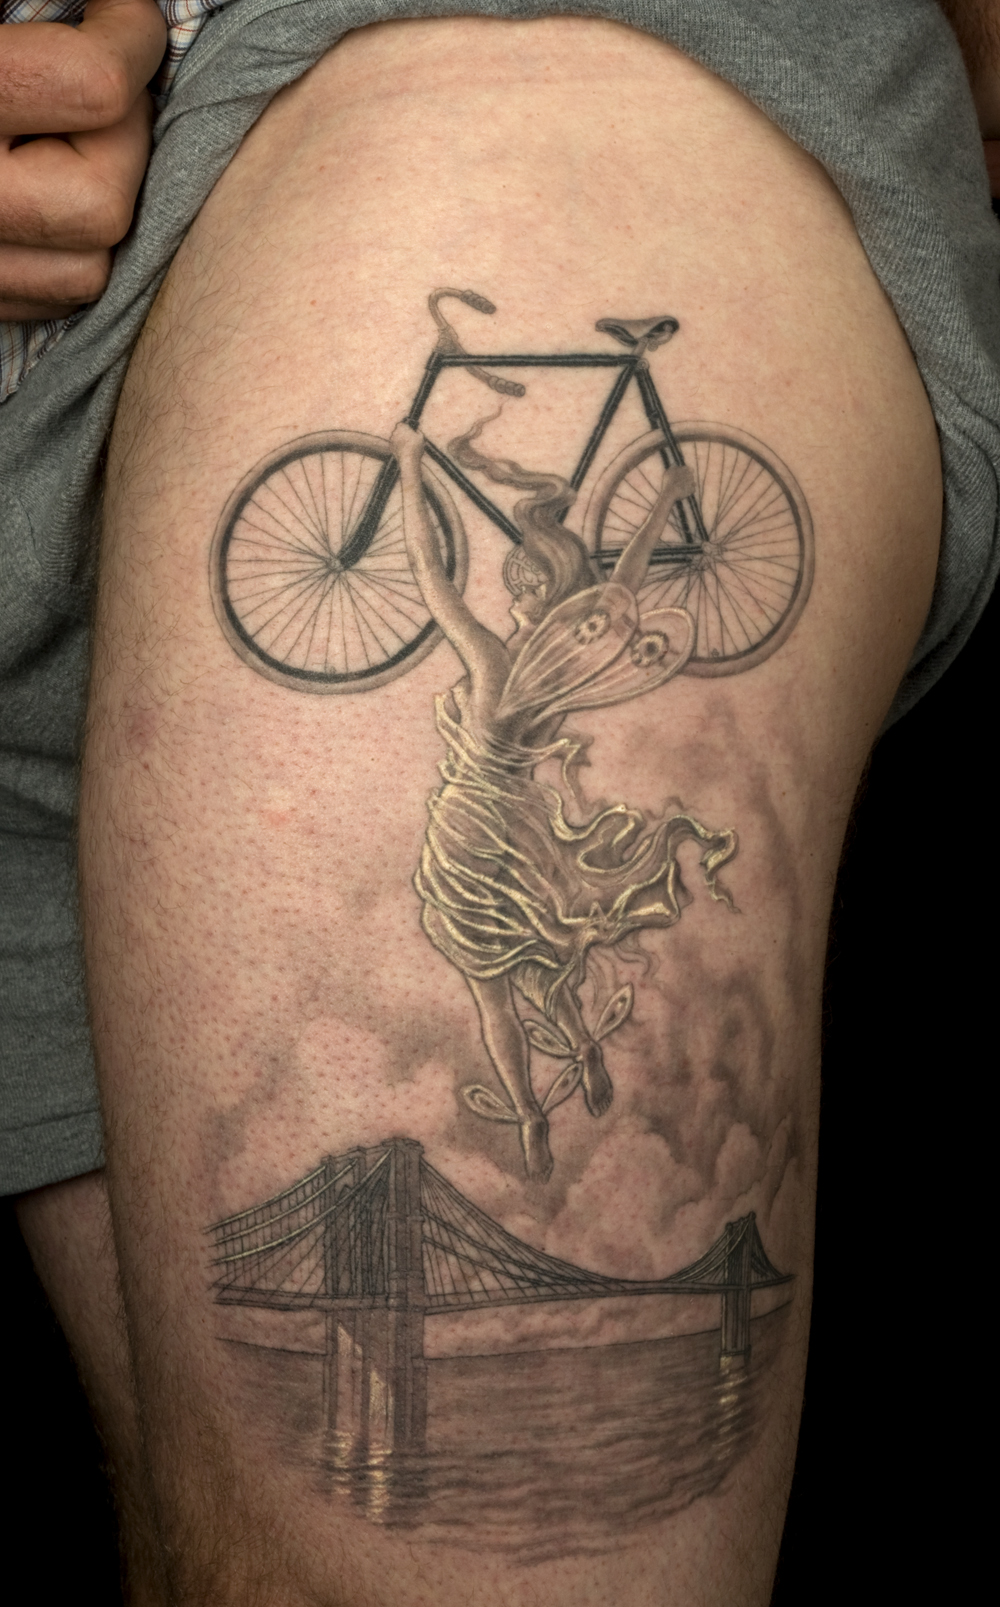 Fairy Lifting Cycle Tattoo On Biceps